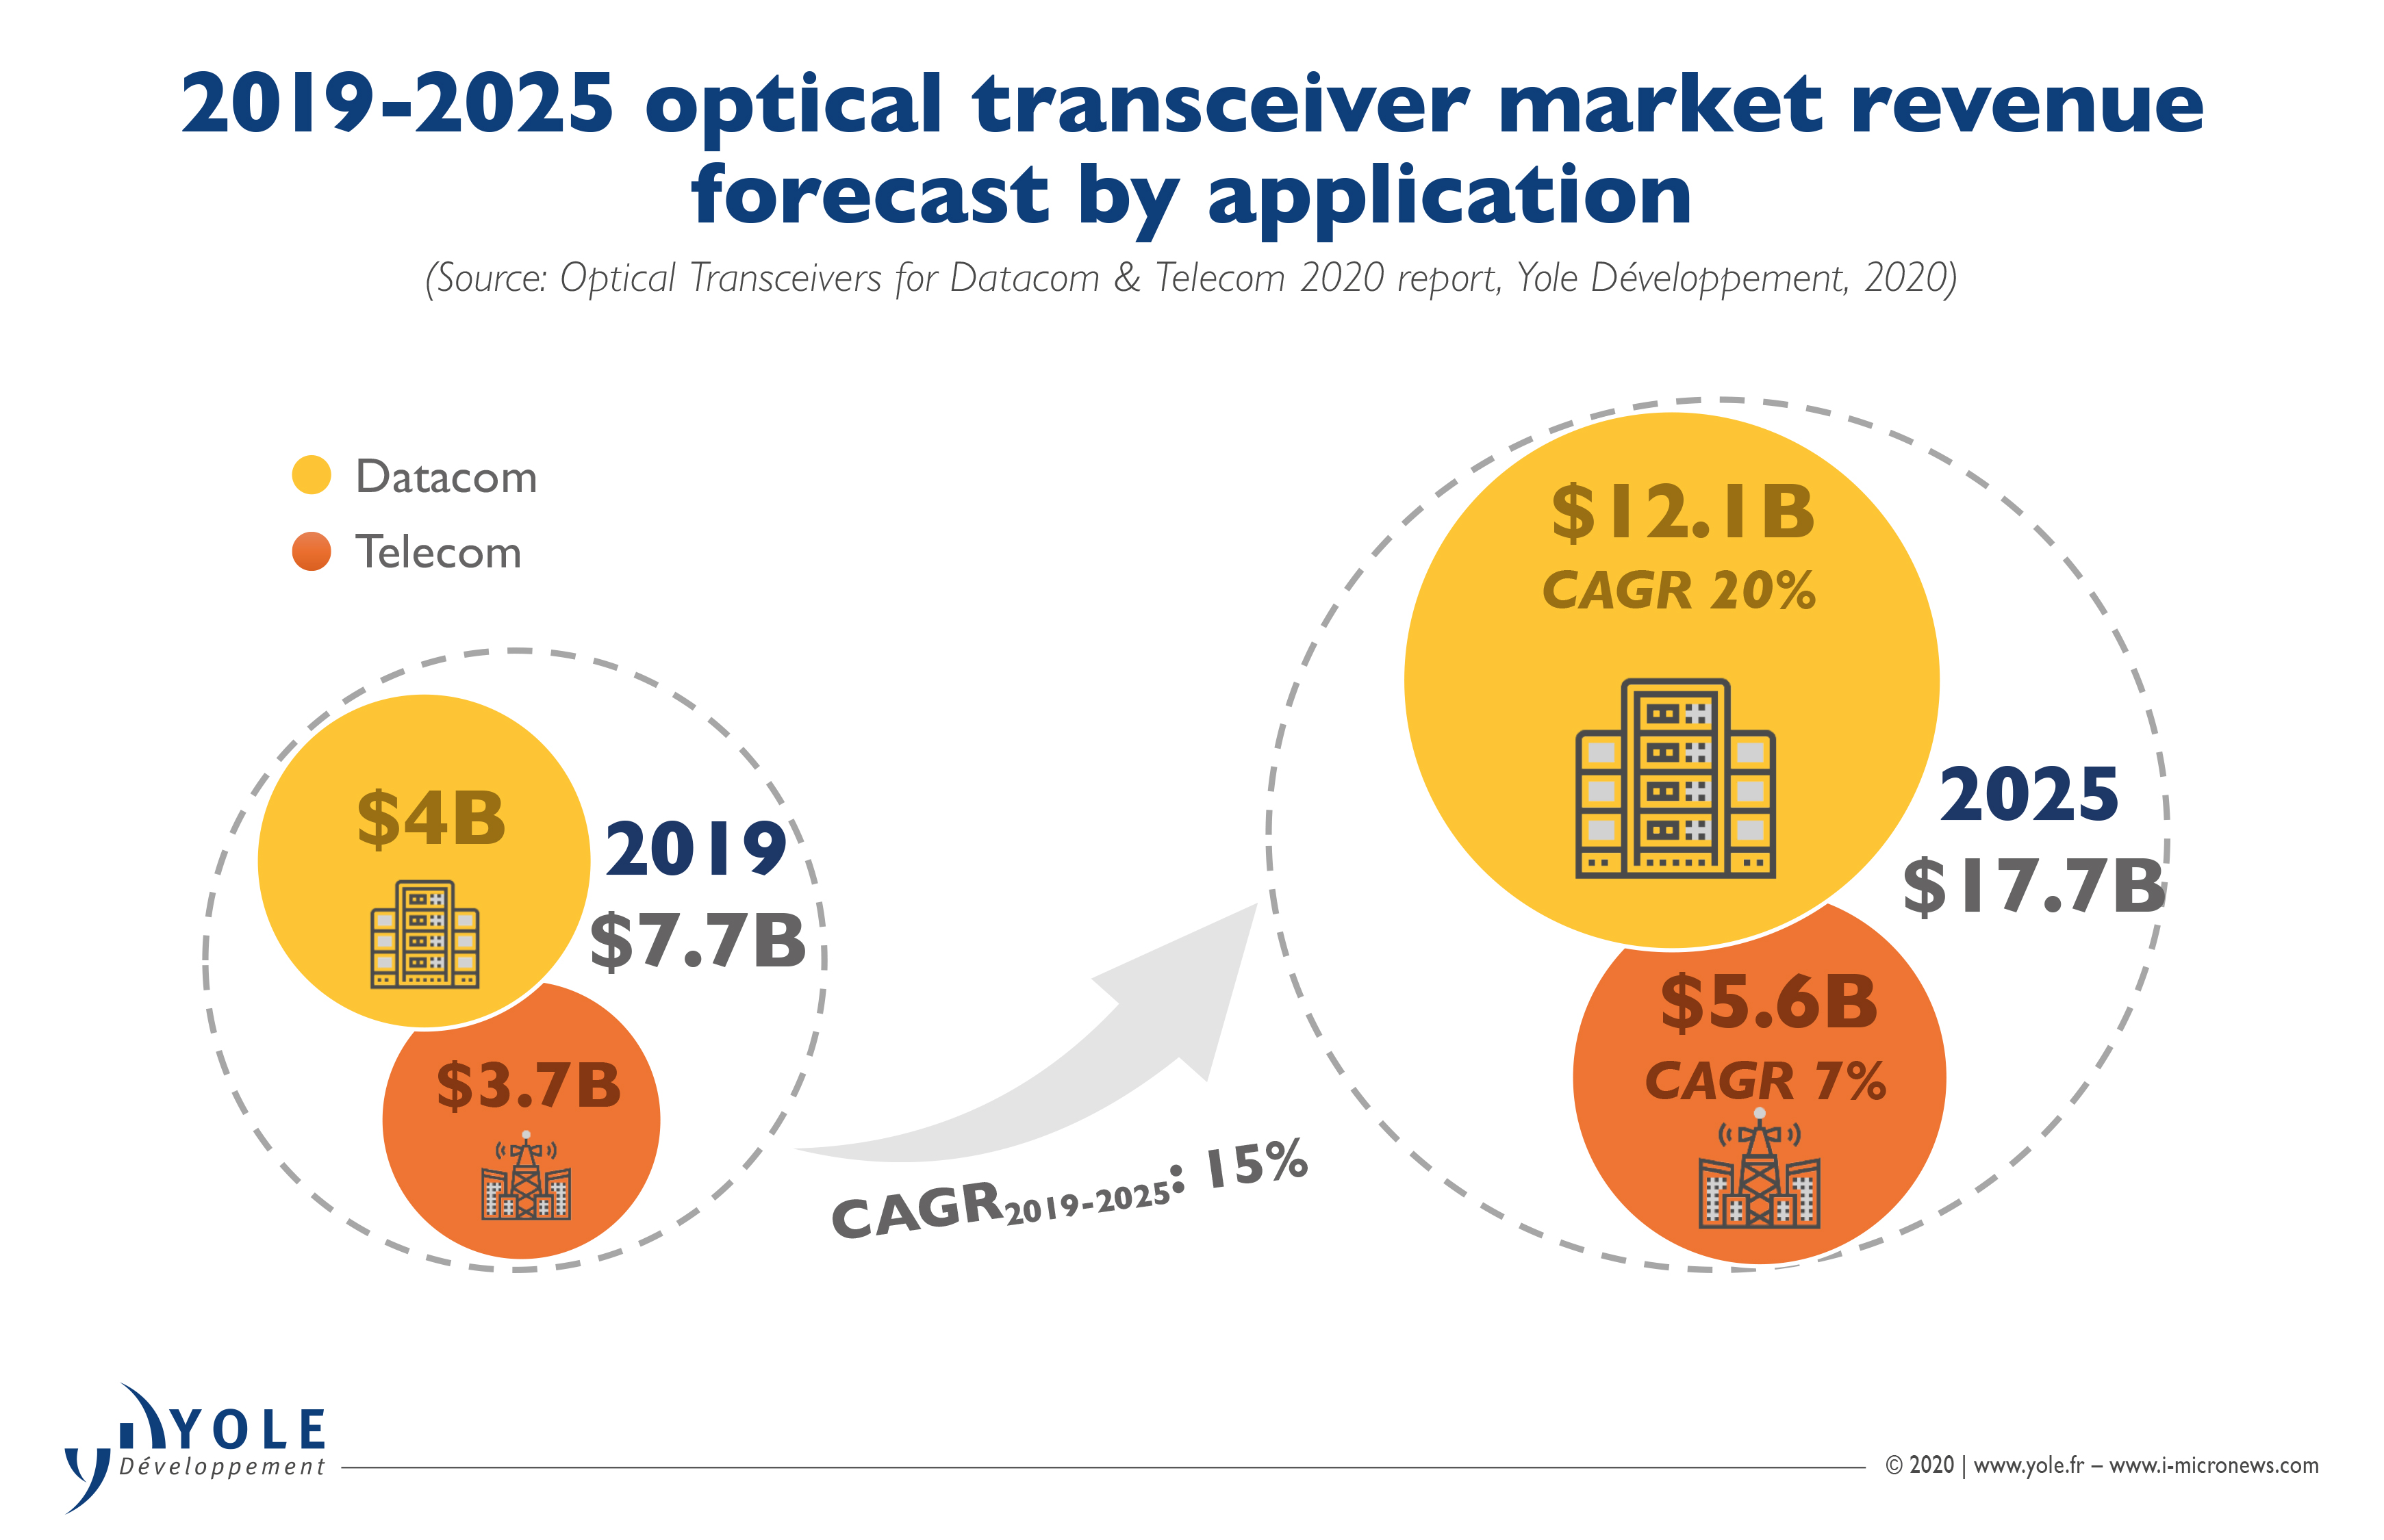 ILLUS_OPTICAL_TRANSCEIVERS_2019-2025MarketRevenueForecast_YOLEGROUP_June2020